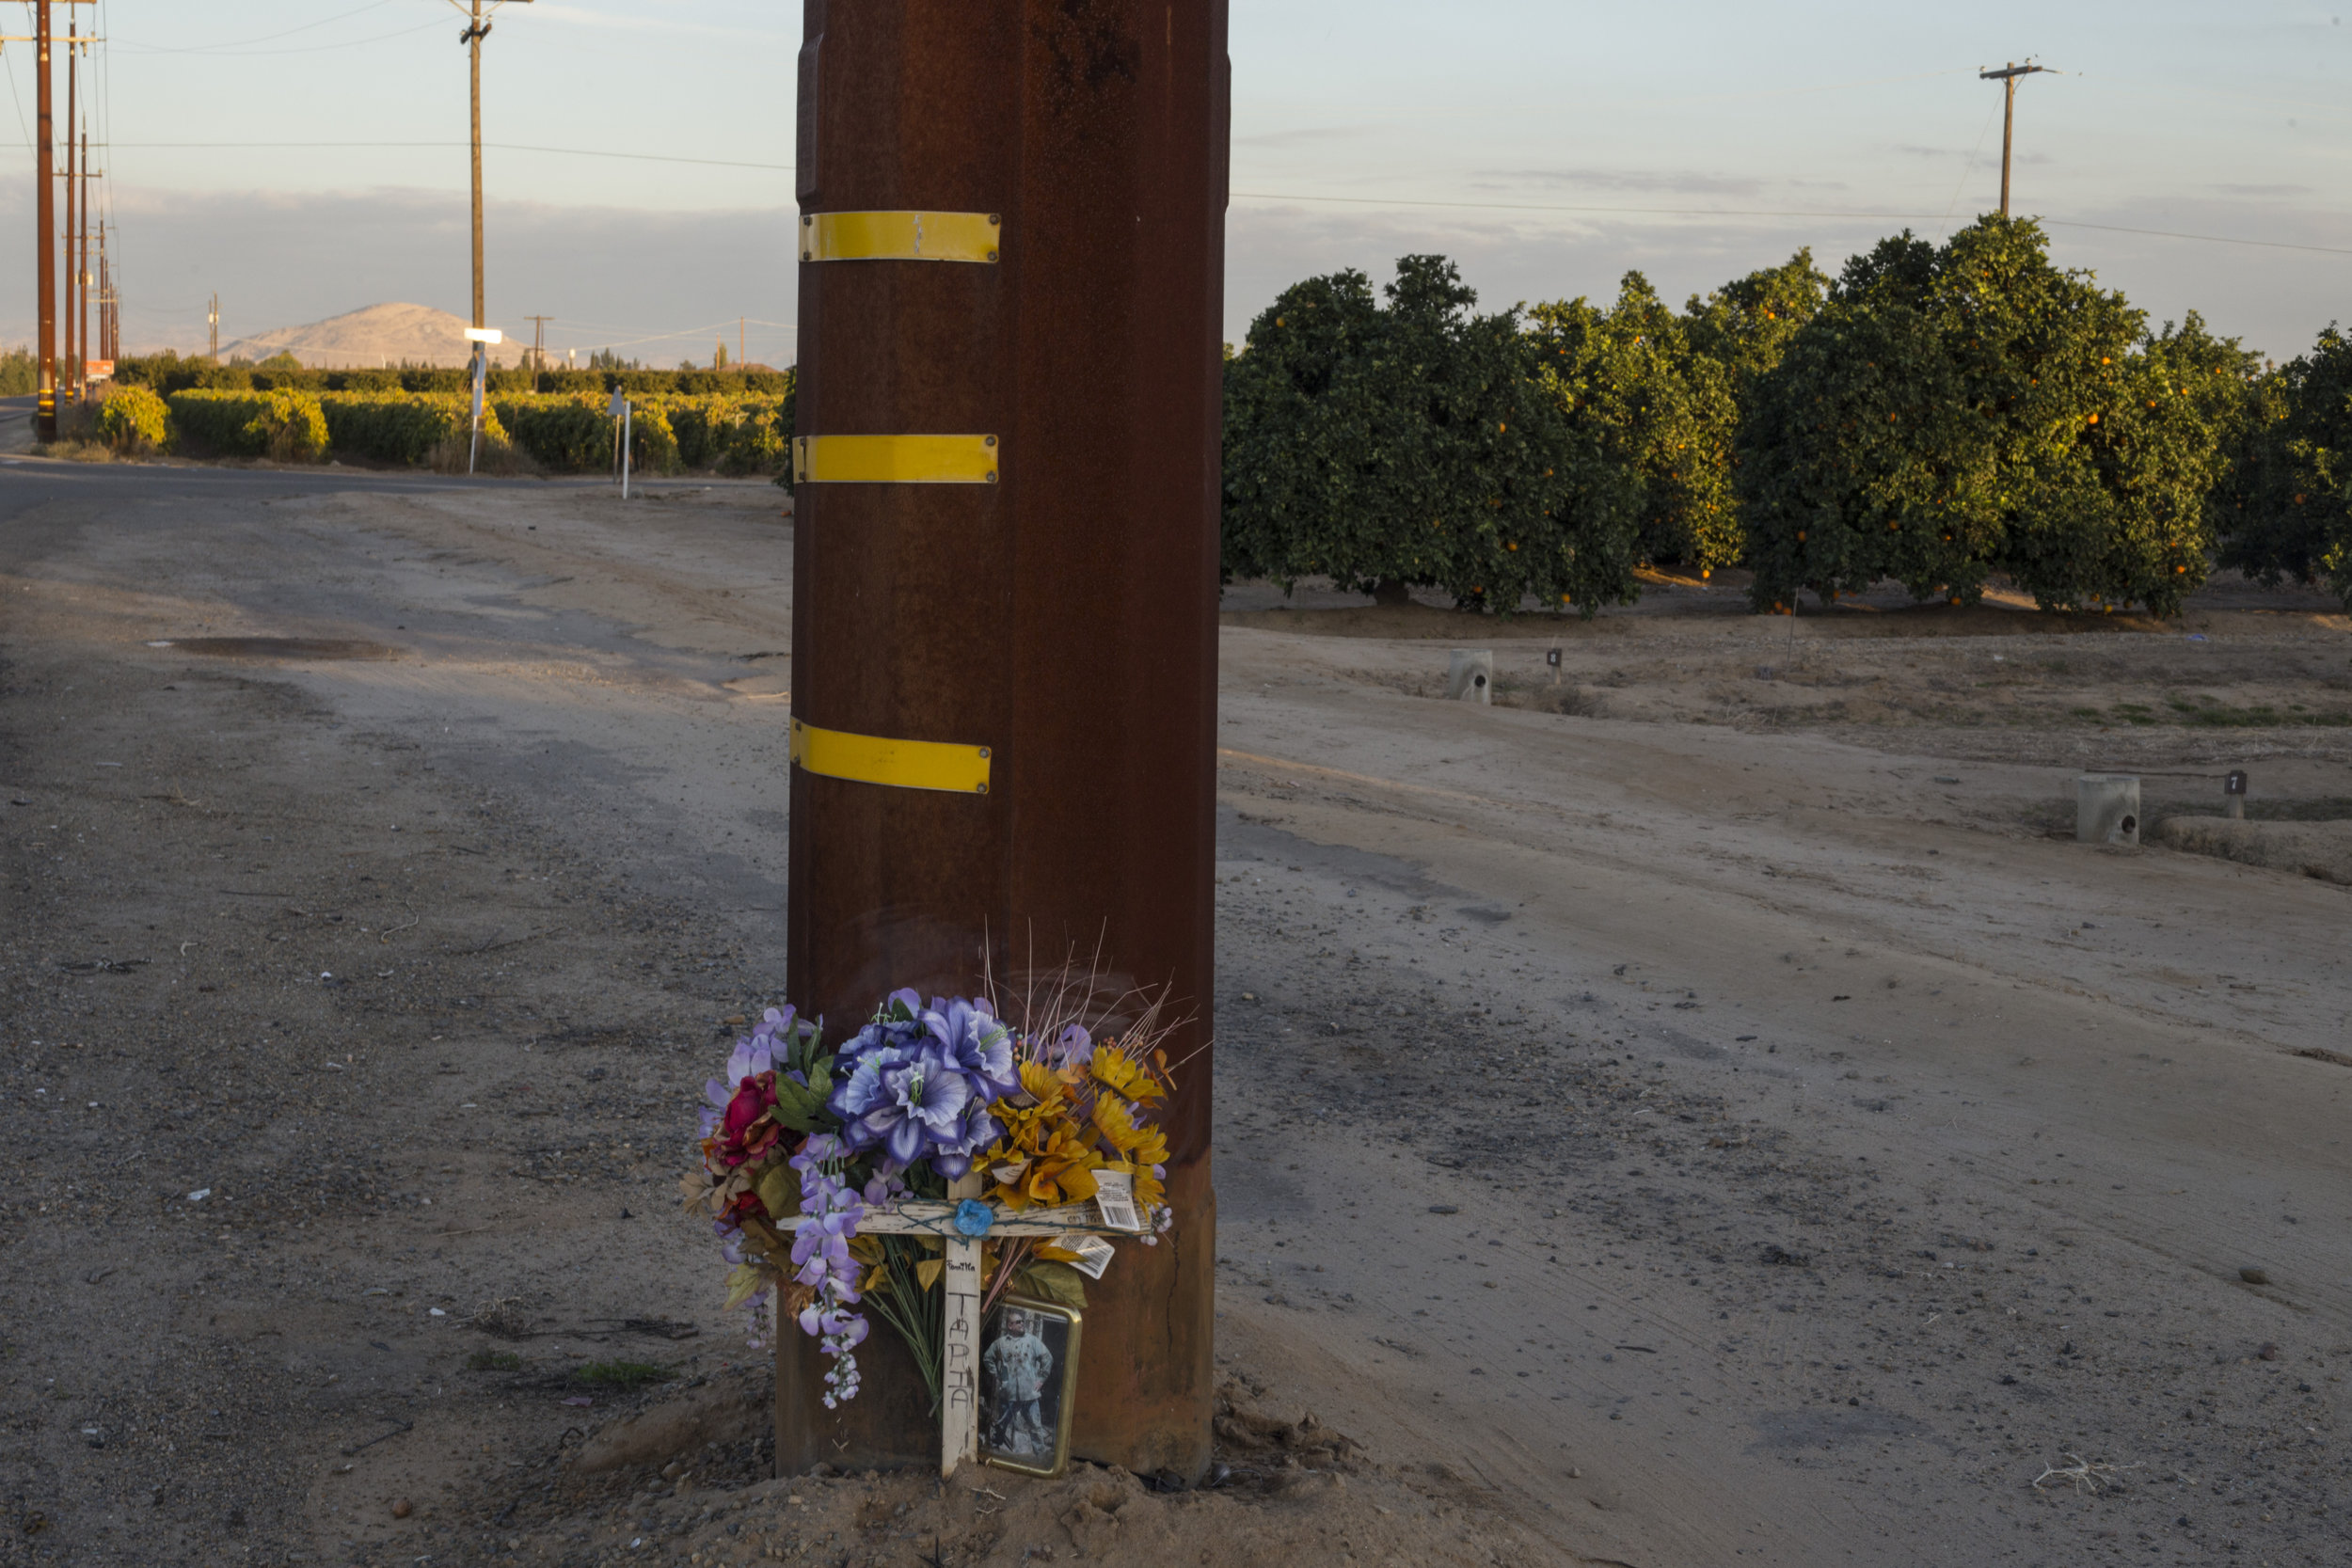 A memorial stands against a telephone pole at the edge of a highway spanning through miles of mass agriculture in Fresno, Calif., on Friday, November 10, 2017.